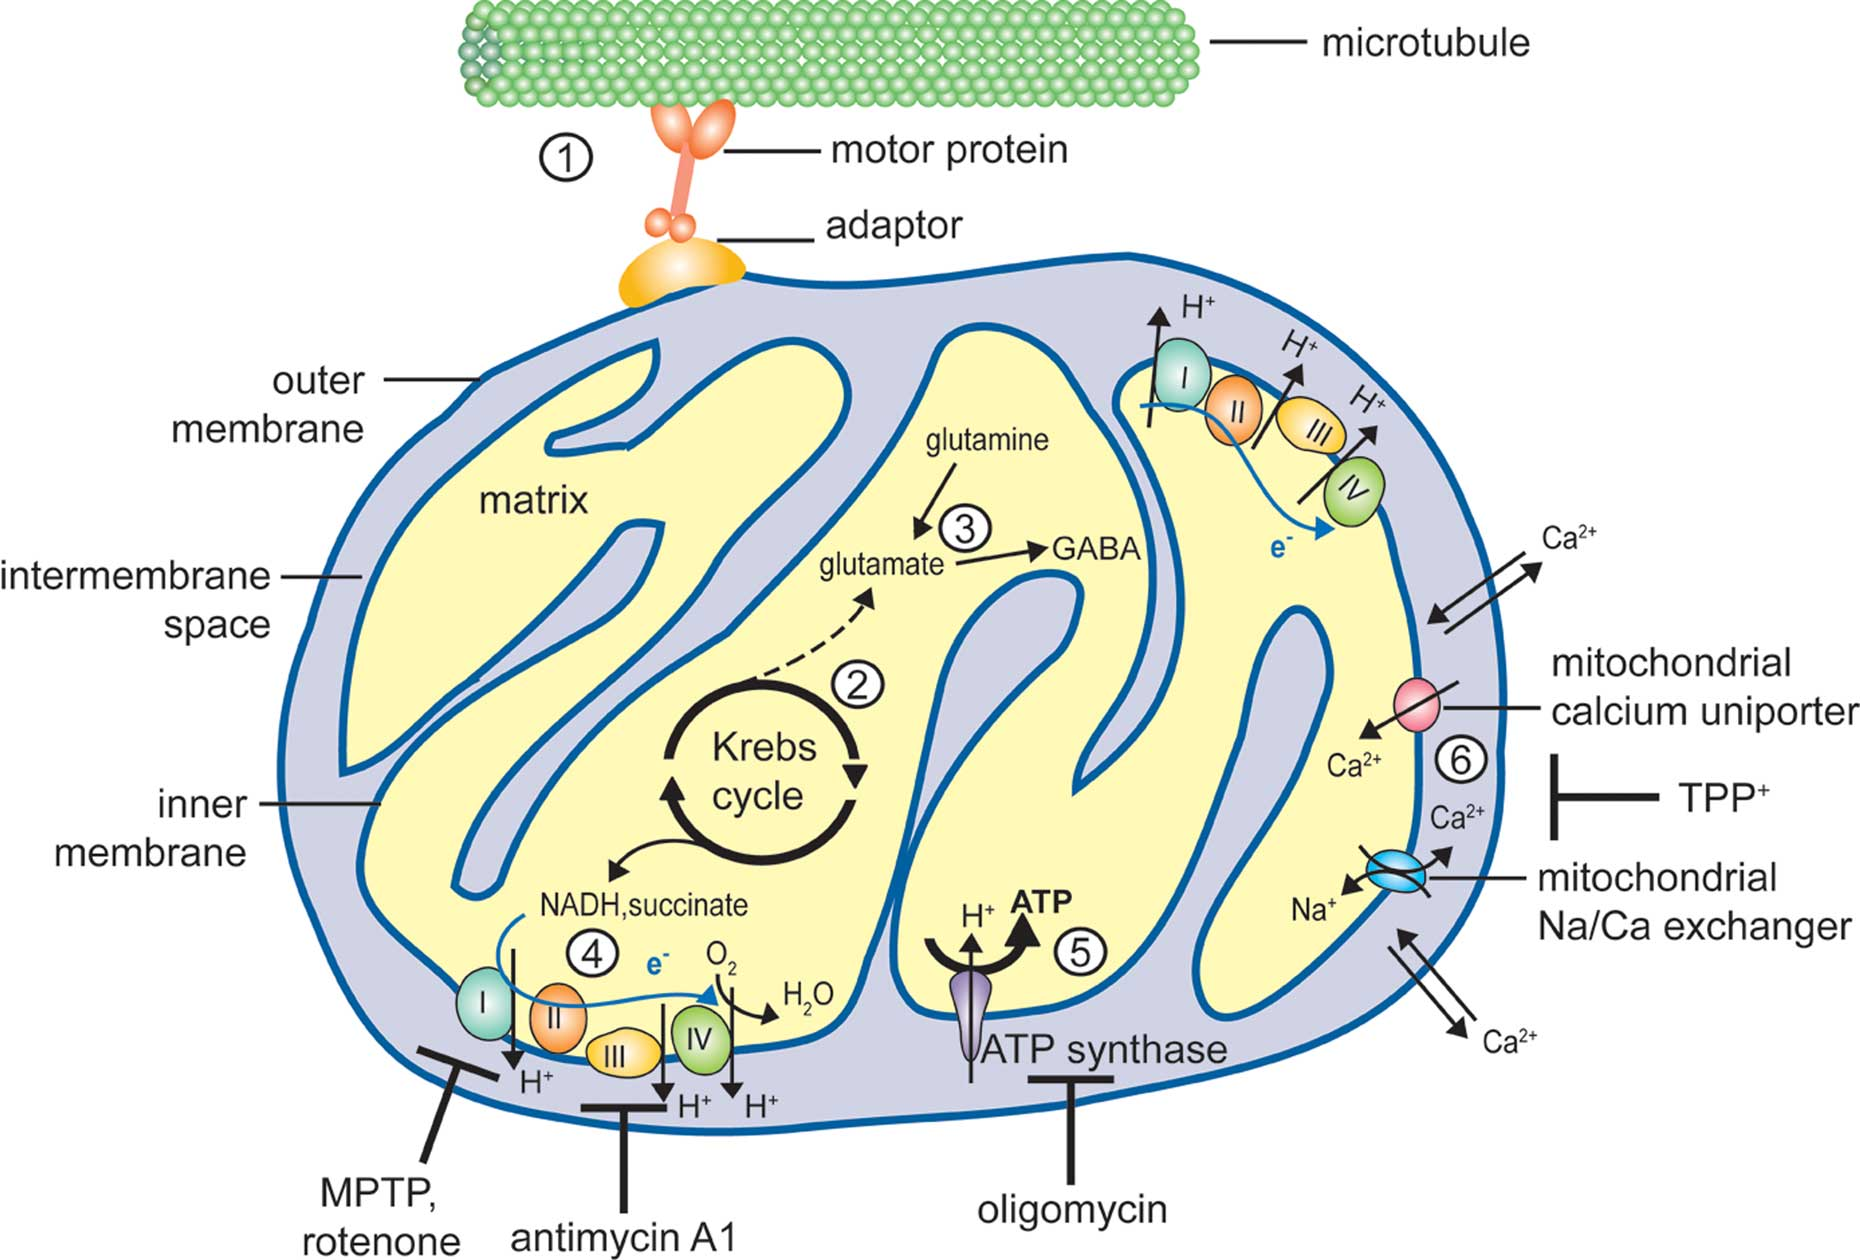 Citric acid cycle structures frontiers synaptic m pooptronica Image collections